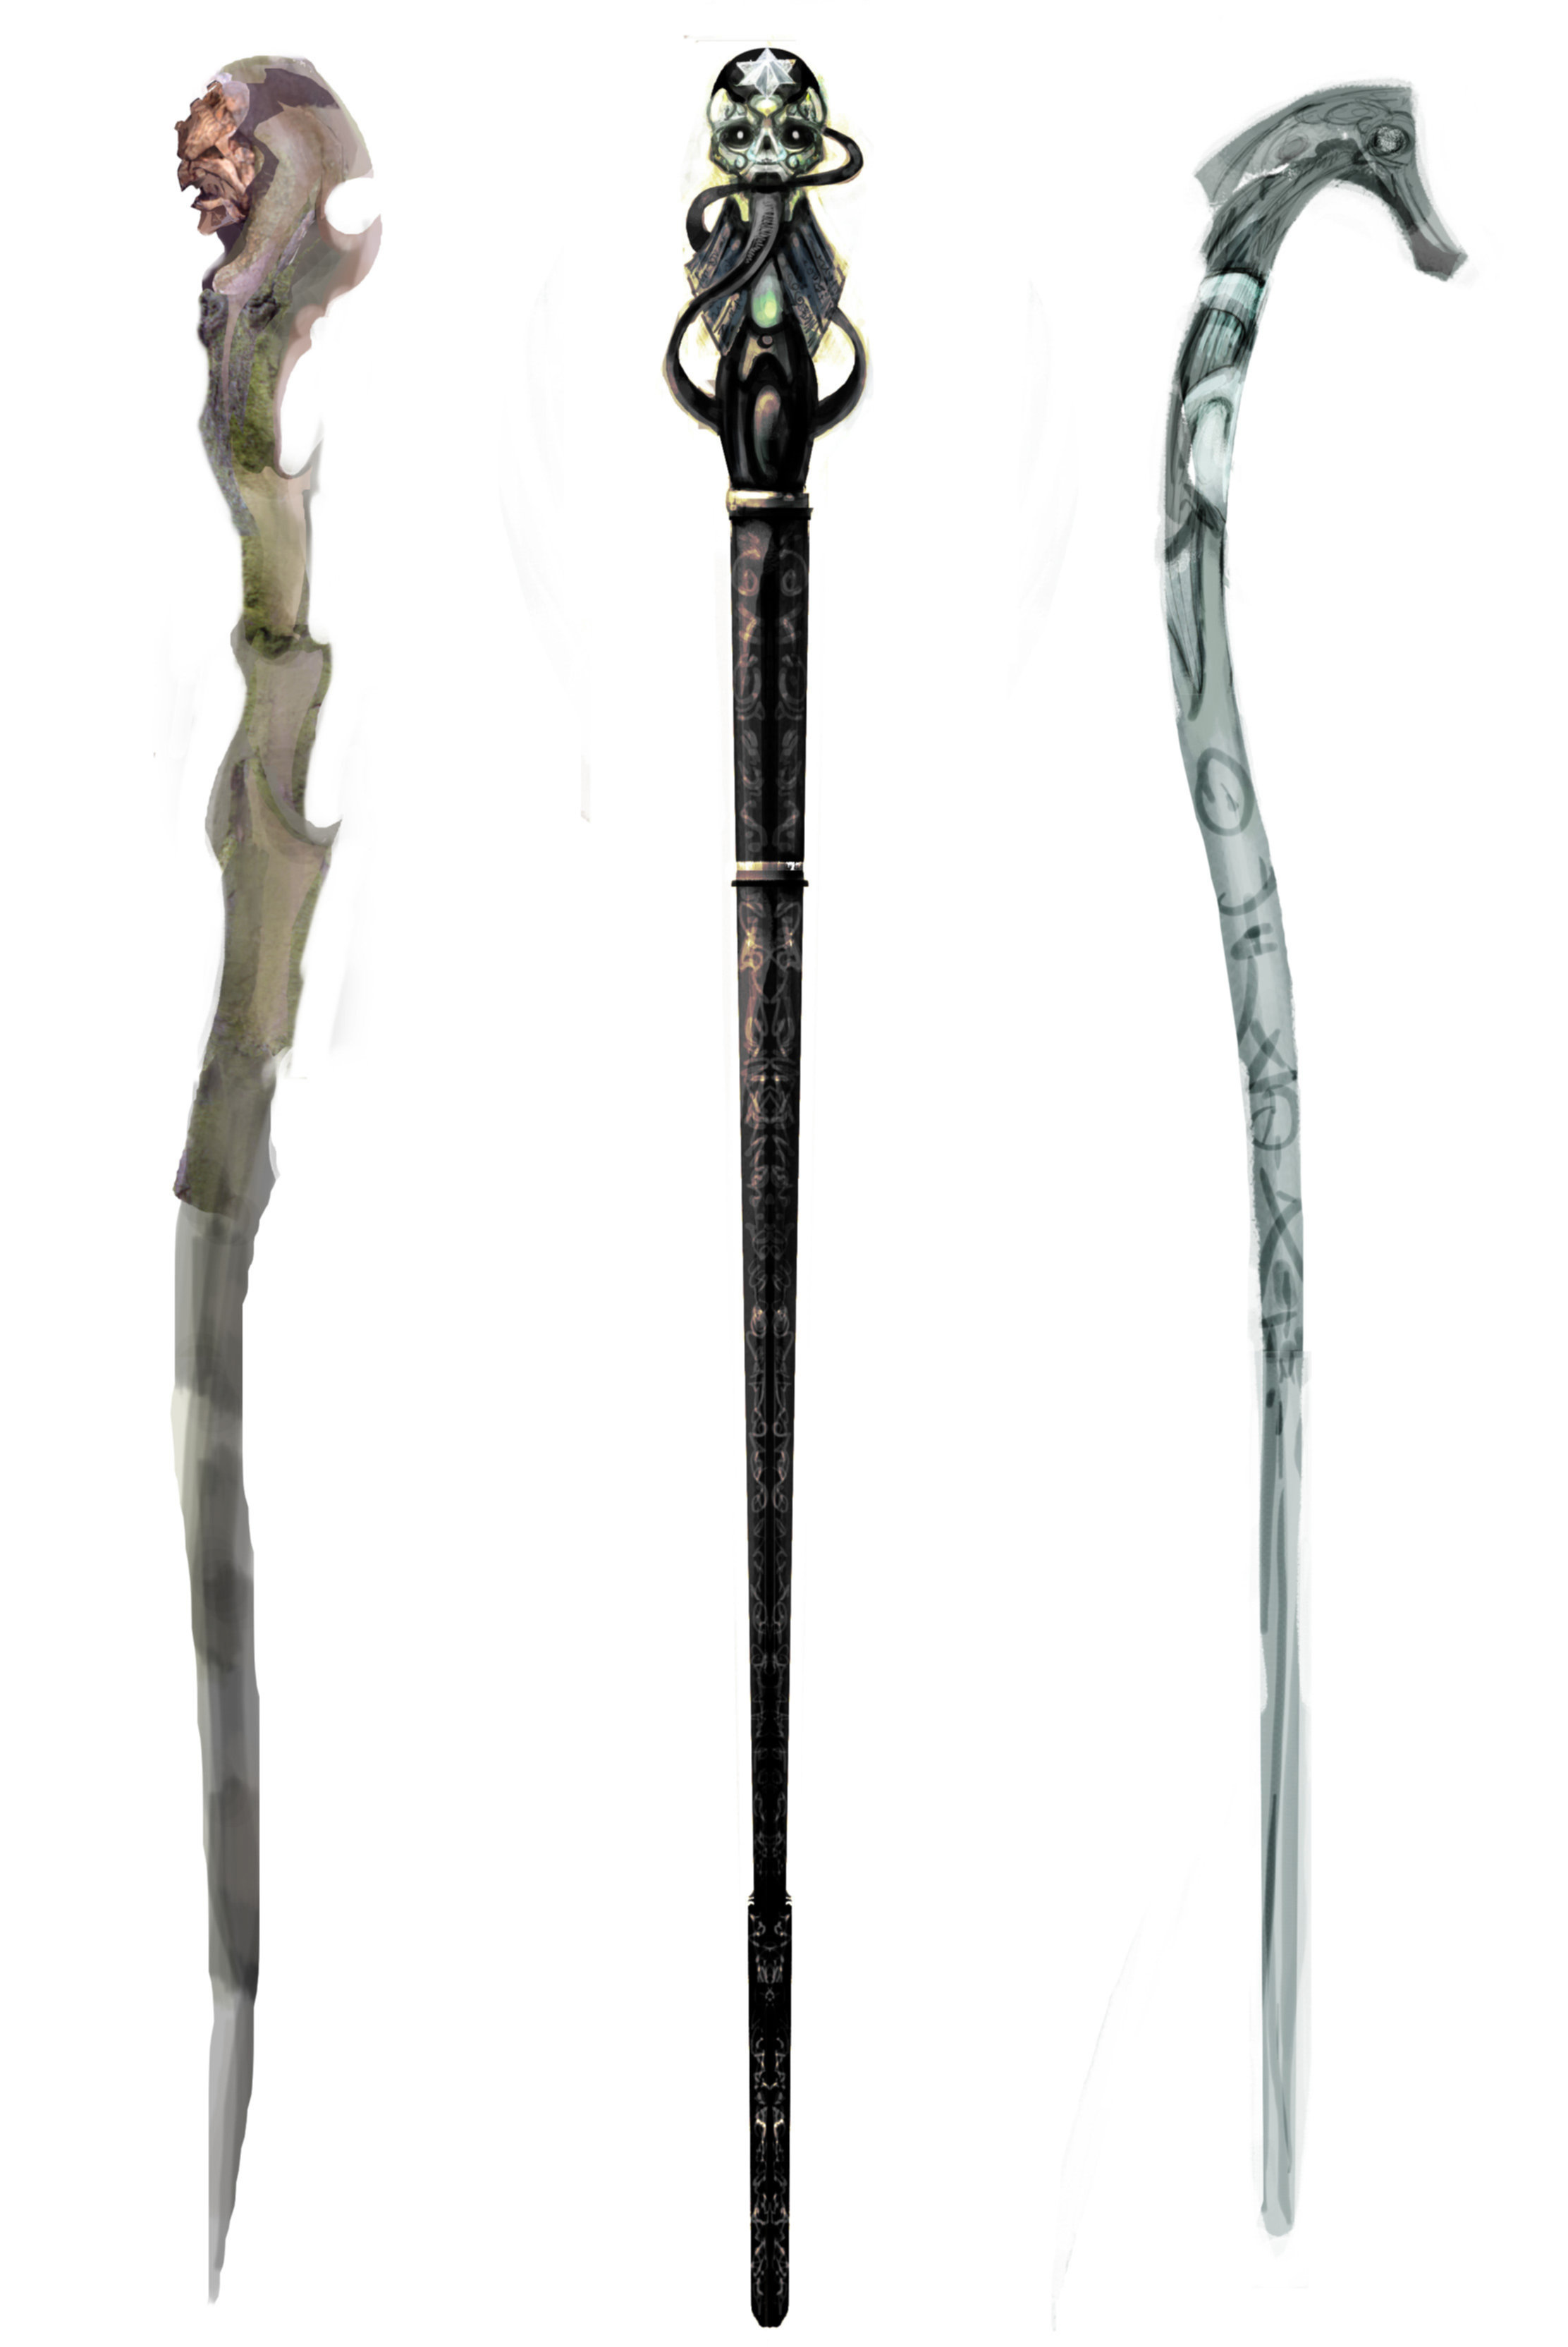 Three Death Eaters Wands from the Goblet of Fire.